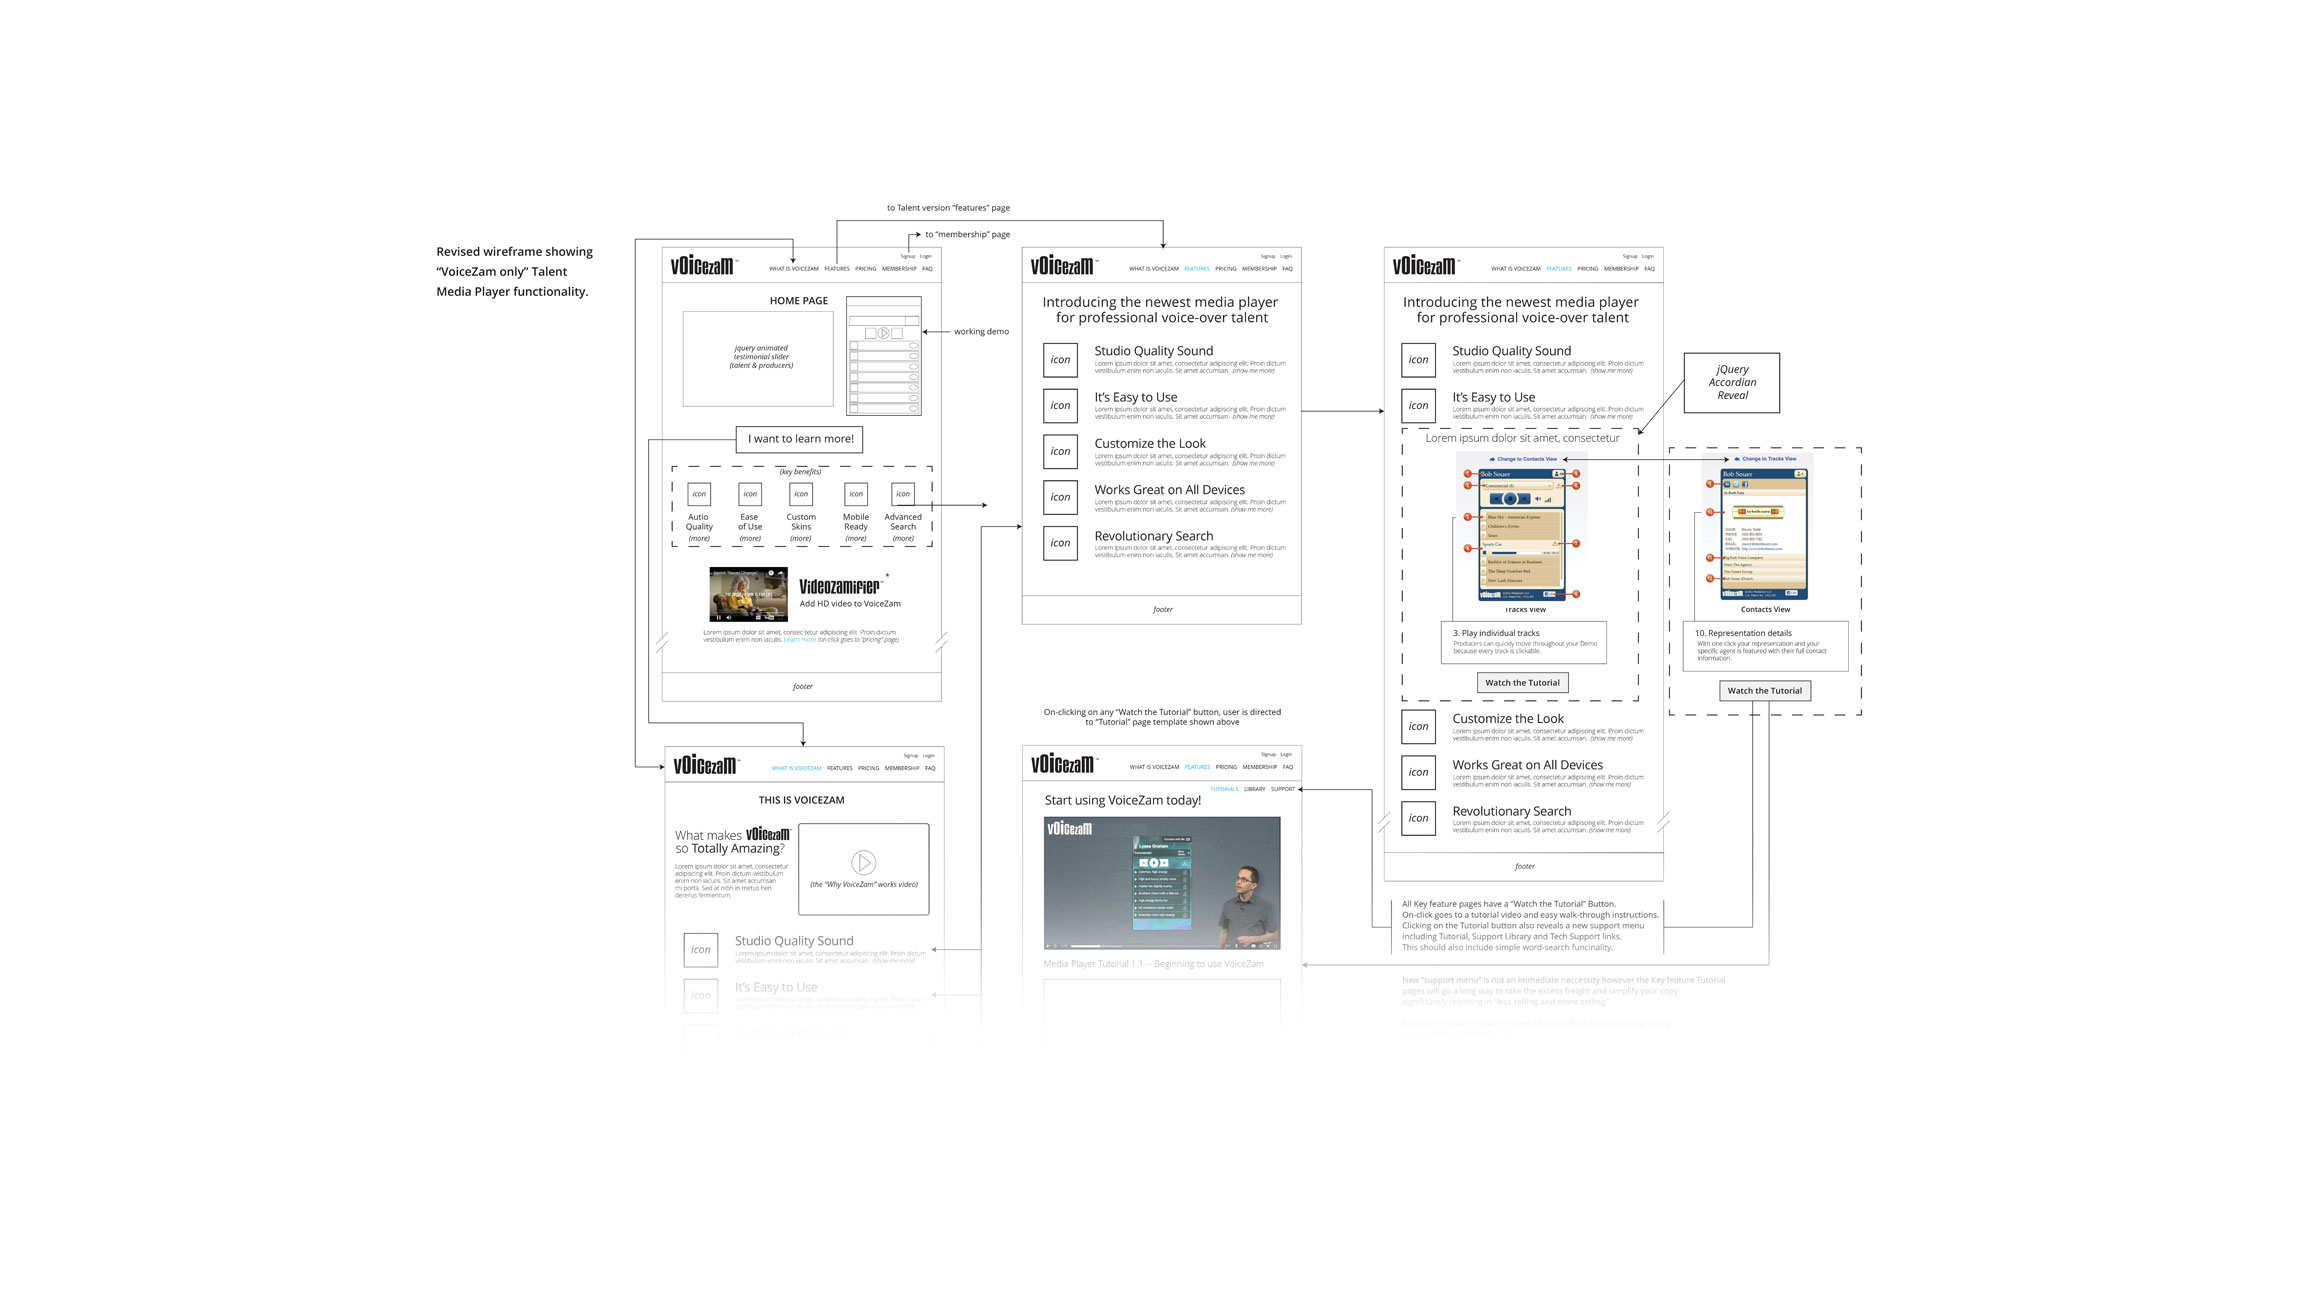 Voicezam SaaS Wireframe (1 of 2)